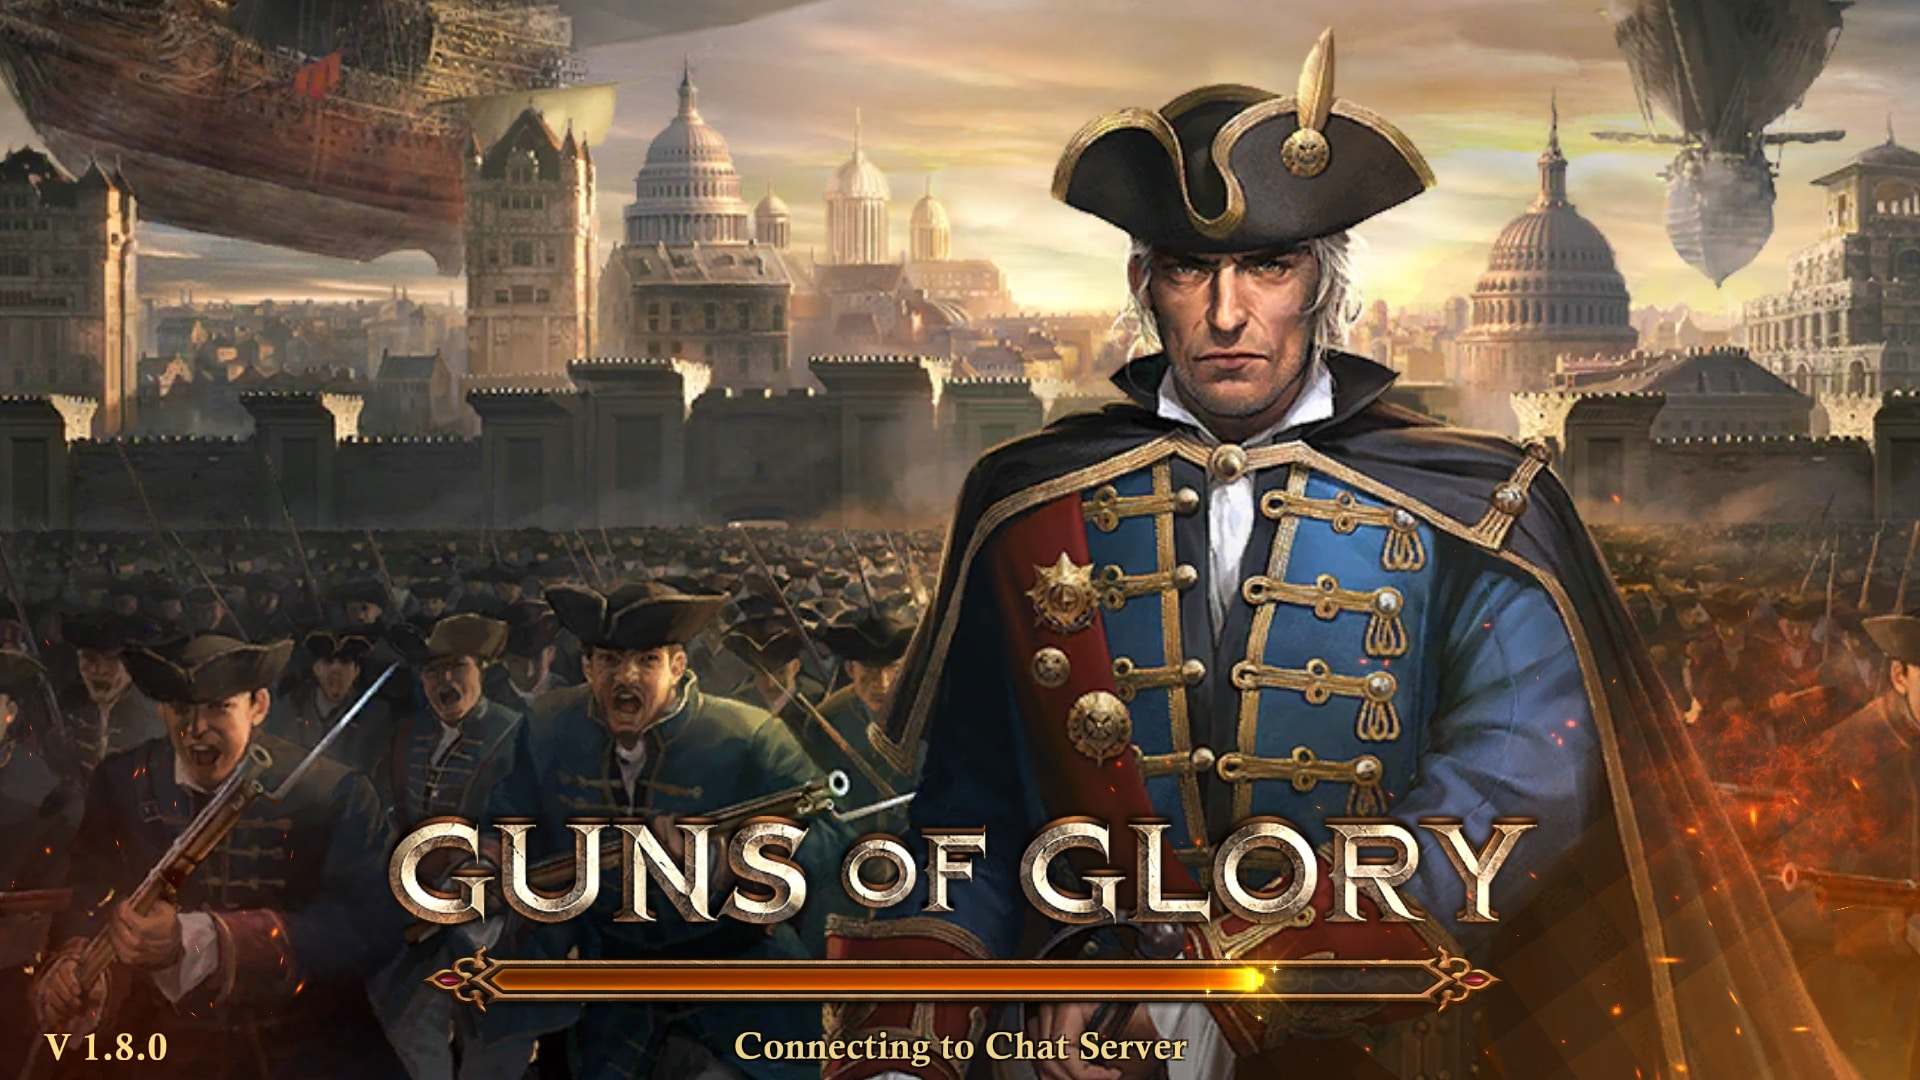 Download Guns of Glory APK- For Android and iOS 6